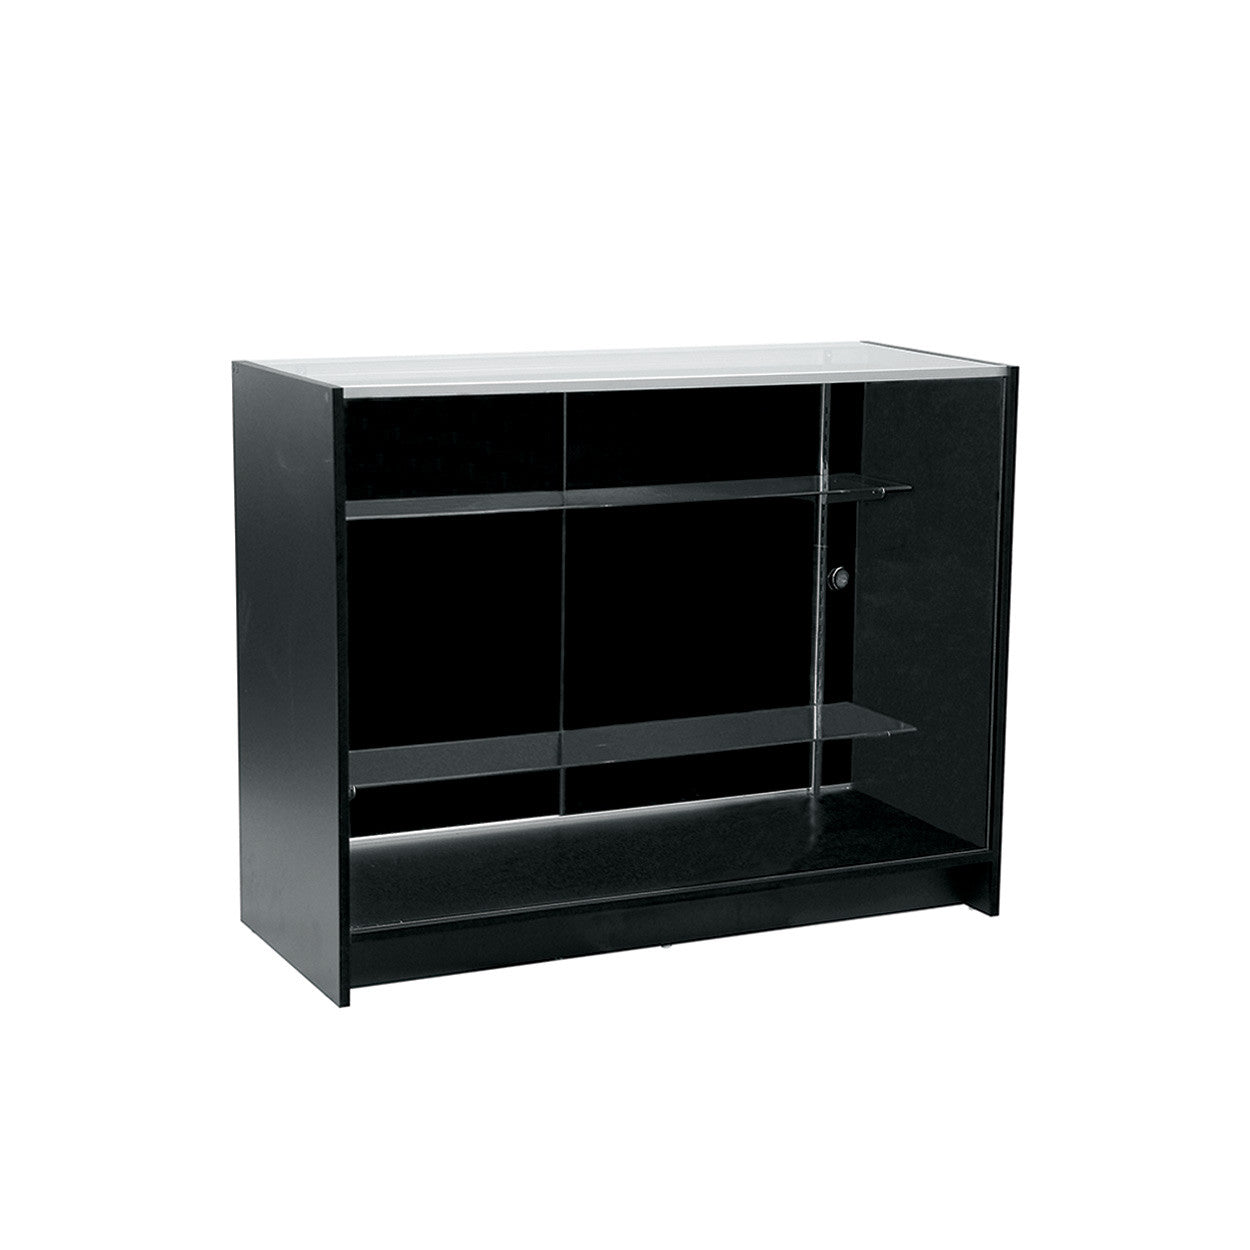 Counter showcase 1200 w timber laminate glass top & 2 shelves  1200 W x 965 H x 508  mm D F5000BK